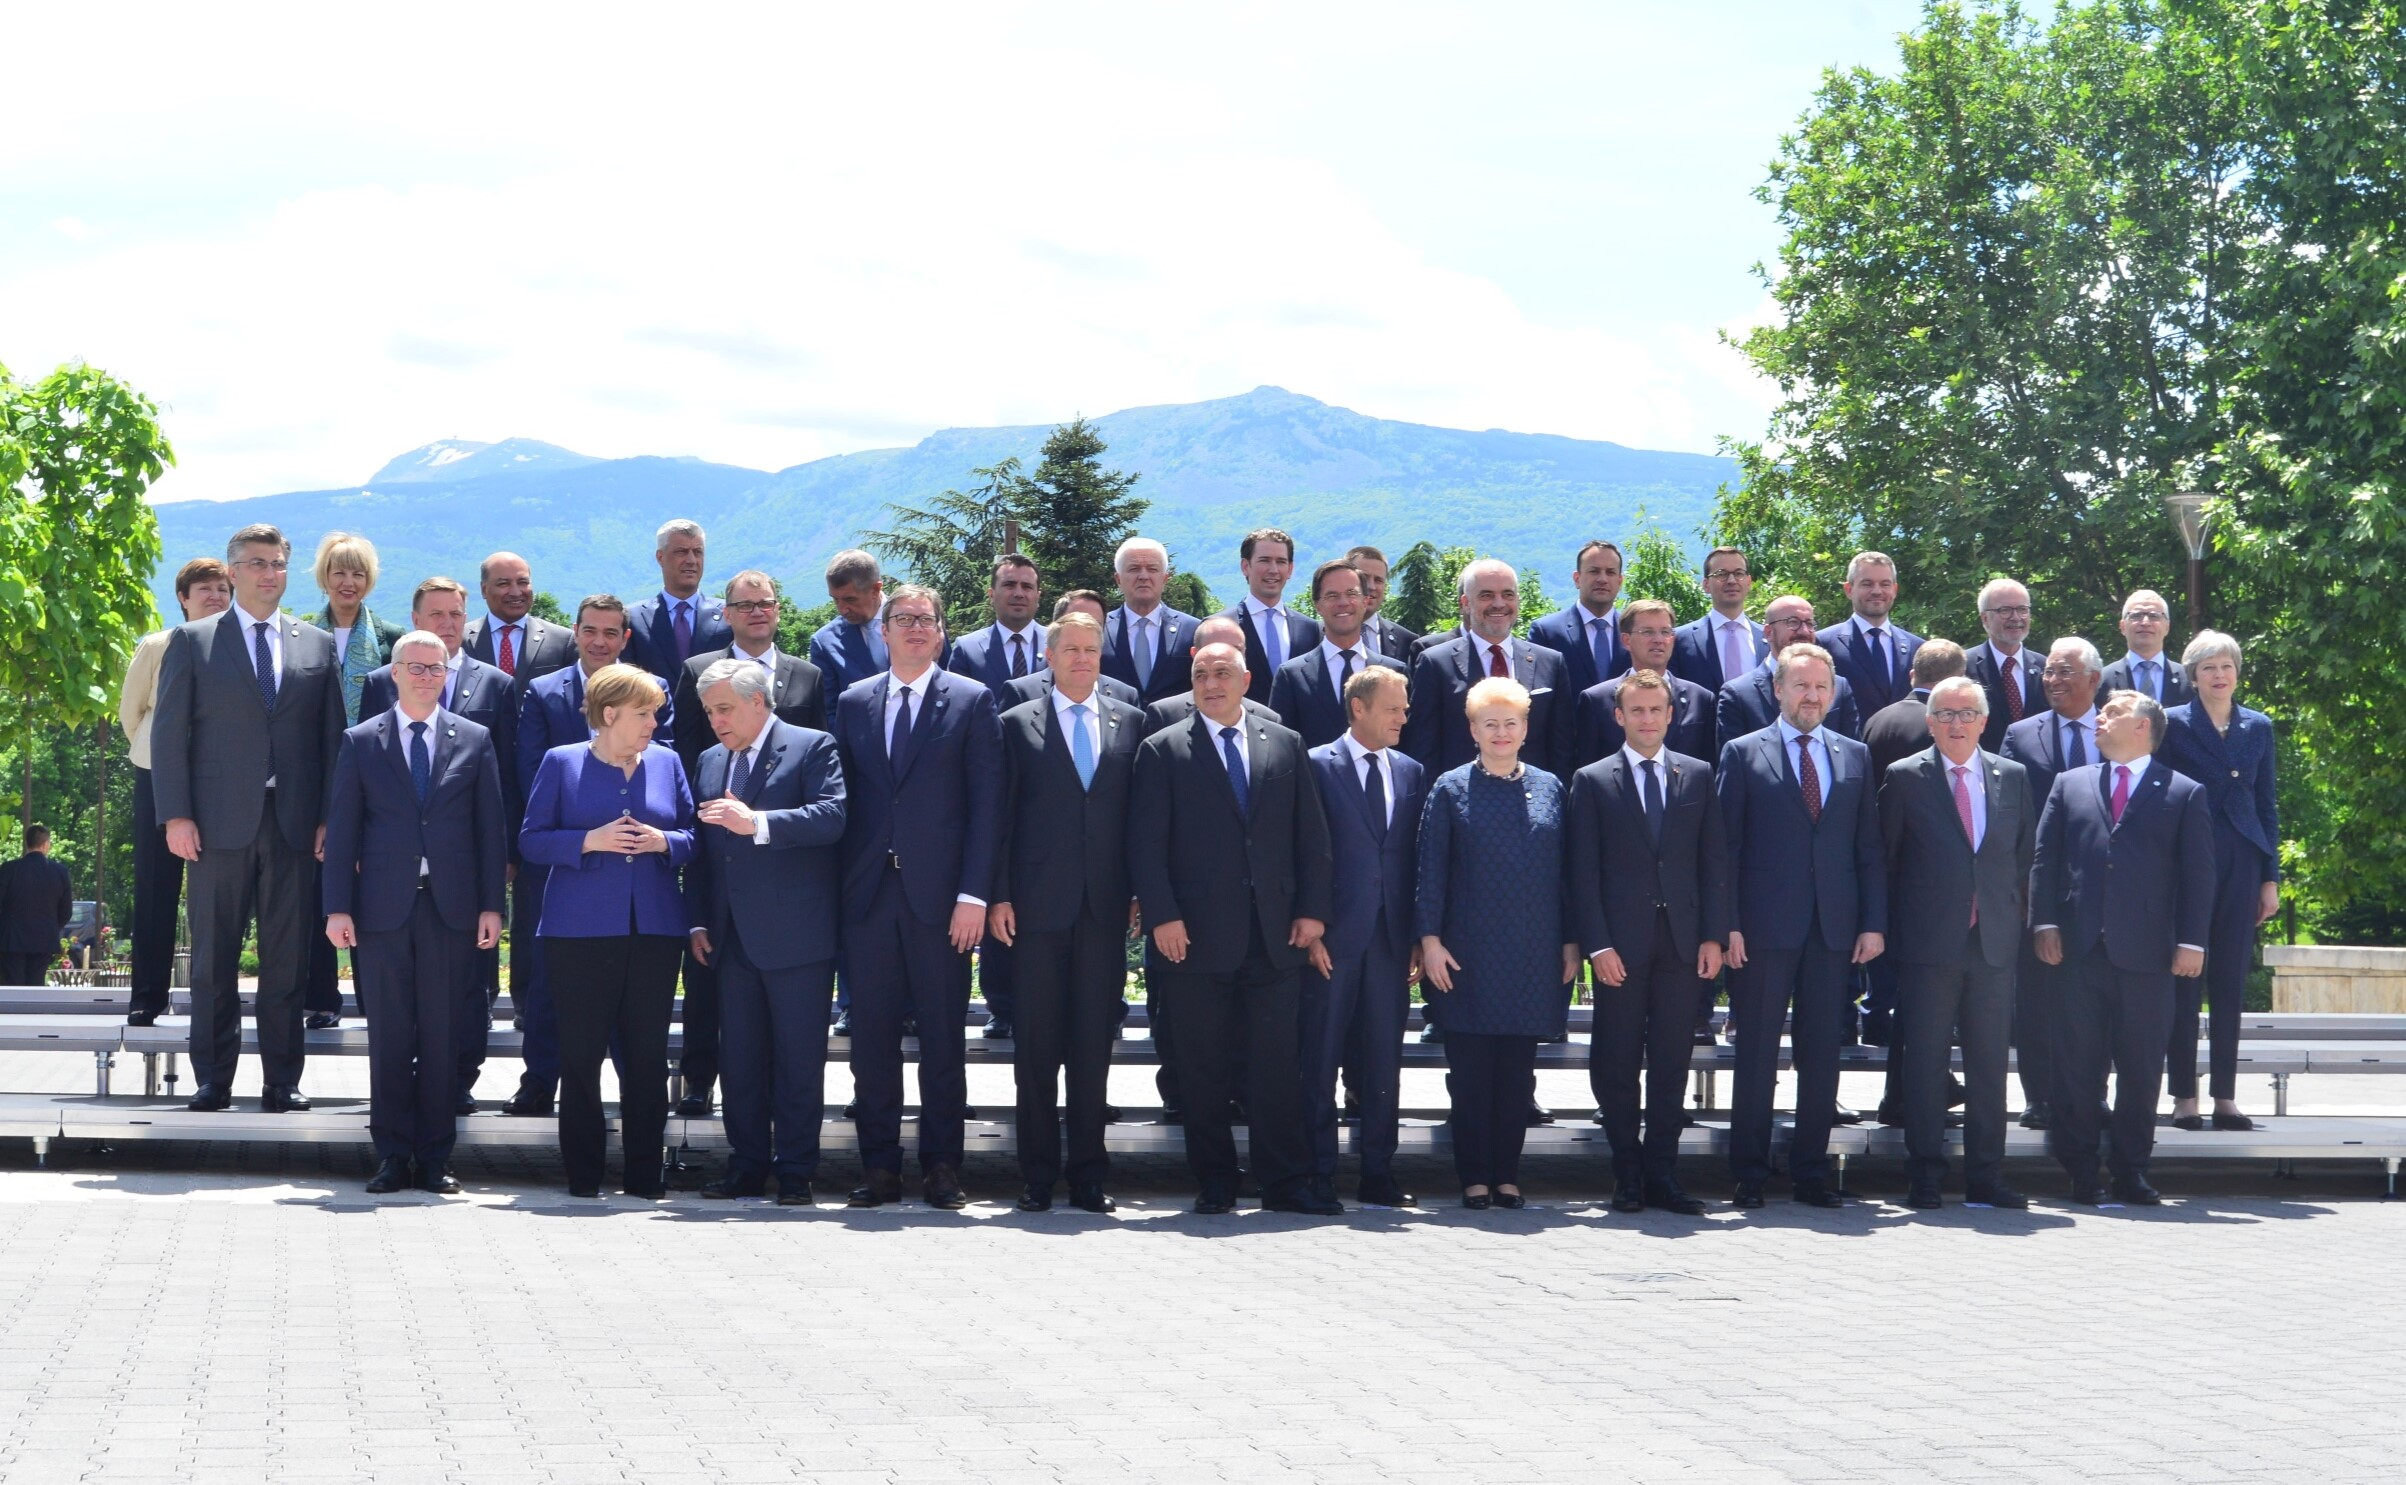 Participants of the  EU-Western Balkans Summit hosted by the Bulgarian Presidency of the Council of the EU, in Sofia on 17 May 2018. RCC Secretary General Goran Svilanovic - top row, first one on the right. (Photo: Yordan Simeonov (EU2018BG))